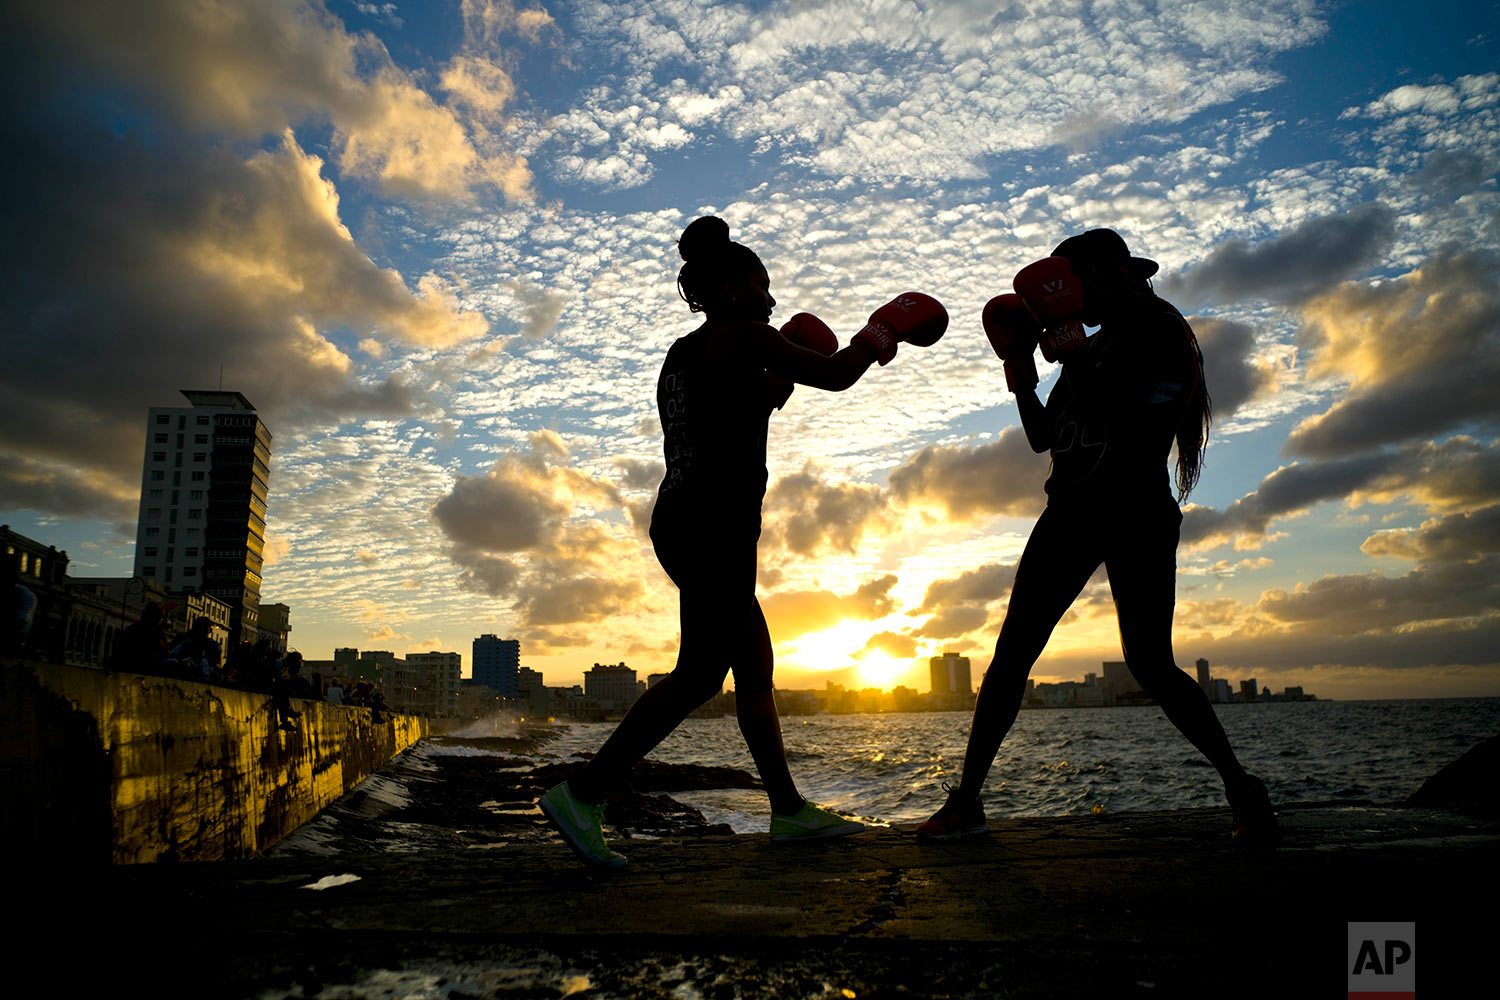 "In this Jan. 30, 2017 photo, boxers Idamerys Moreno, left, and Legnis Cala, train during a photo session on Havana's sea wall in Cuba. Moreno and Cala are part of a group of up-and-coming female boxers on the island who want government support to form Cuba's first female boxing team and help dispel a decades-old belief once summed up by a former top coach: ""Cuban women are meant to show the beauty of their face, not receive punches."" (AP Photo/Ramon Espinosa)"